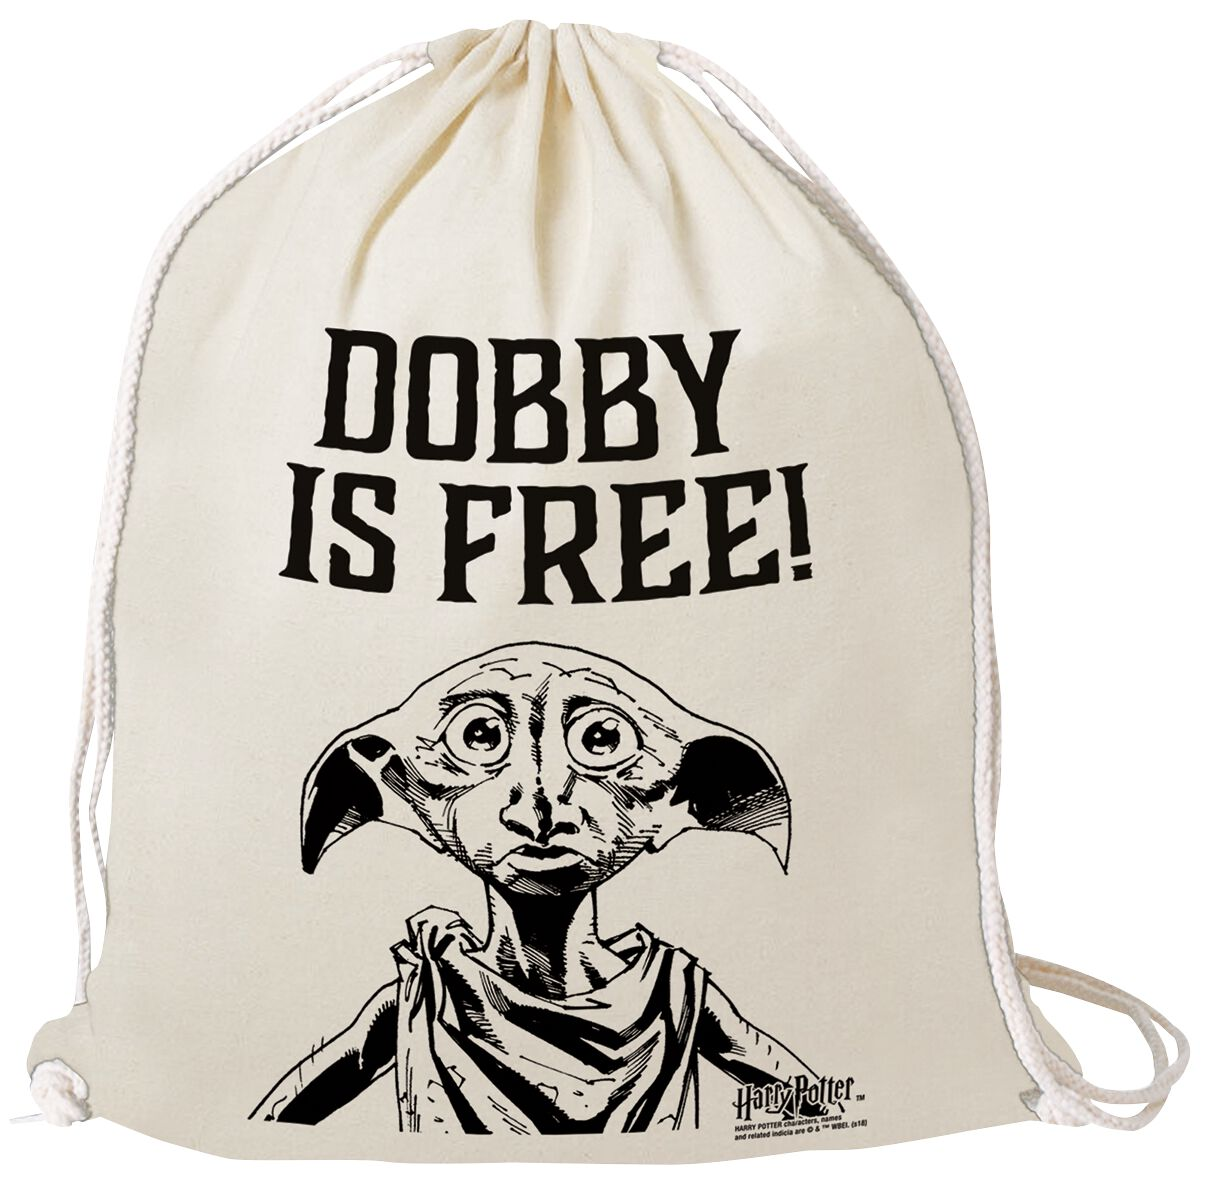 Outstanding Dobby Is Free Andrewgaddart Wooden Chair Designs For Living Room Andrewgaddartcom